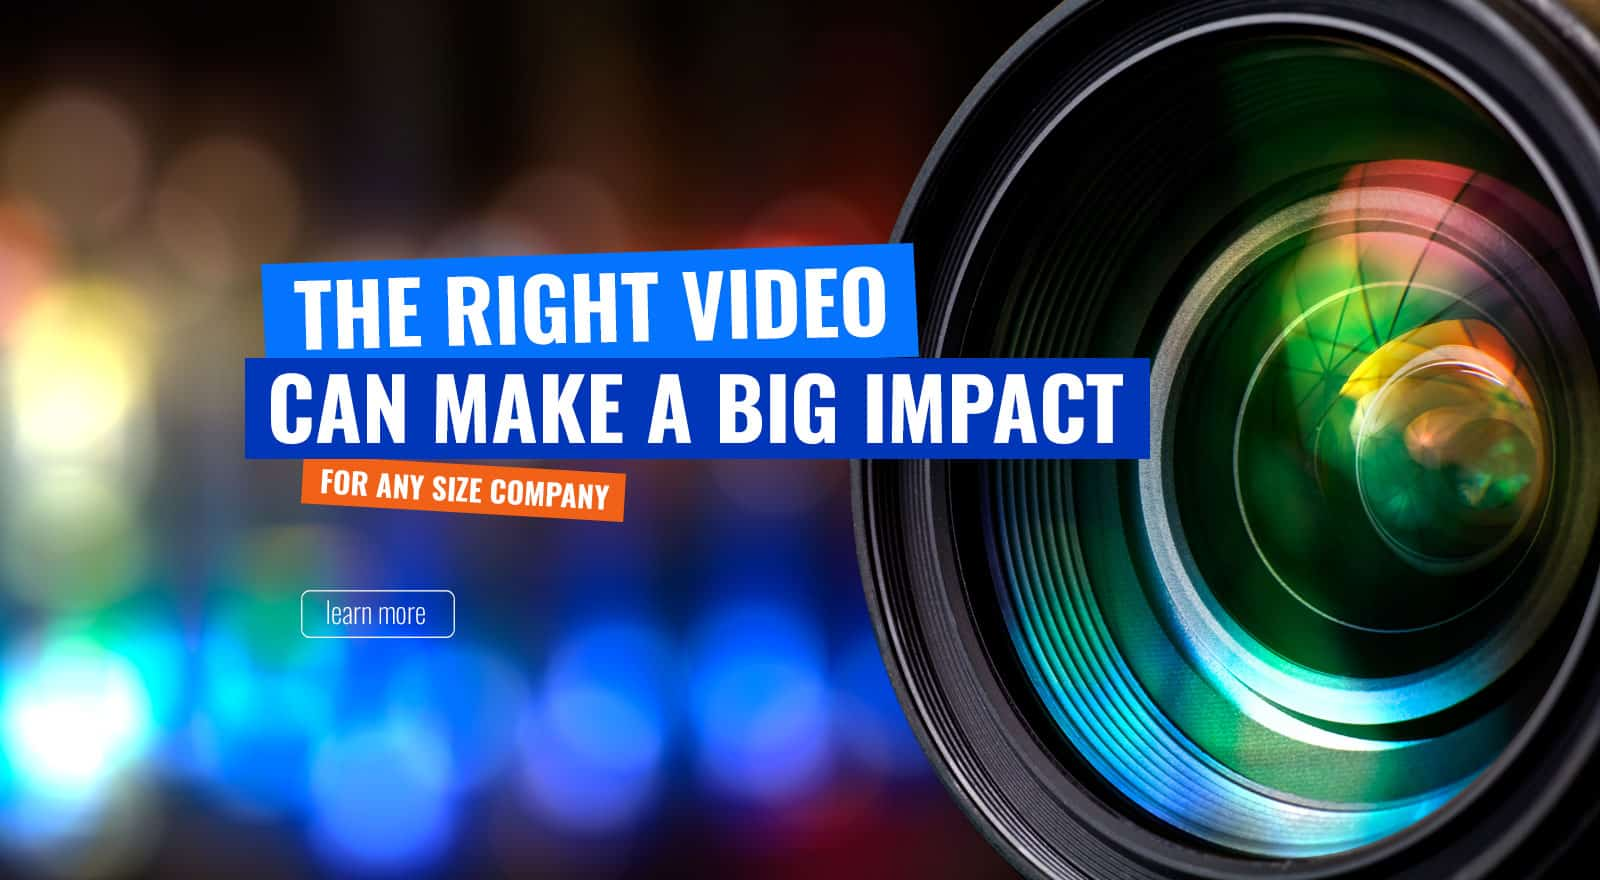 Page link with text: The right video can make a big impact for any size company.